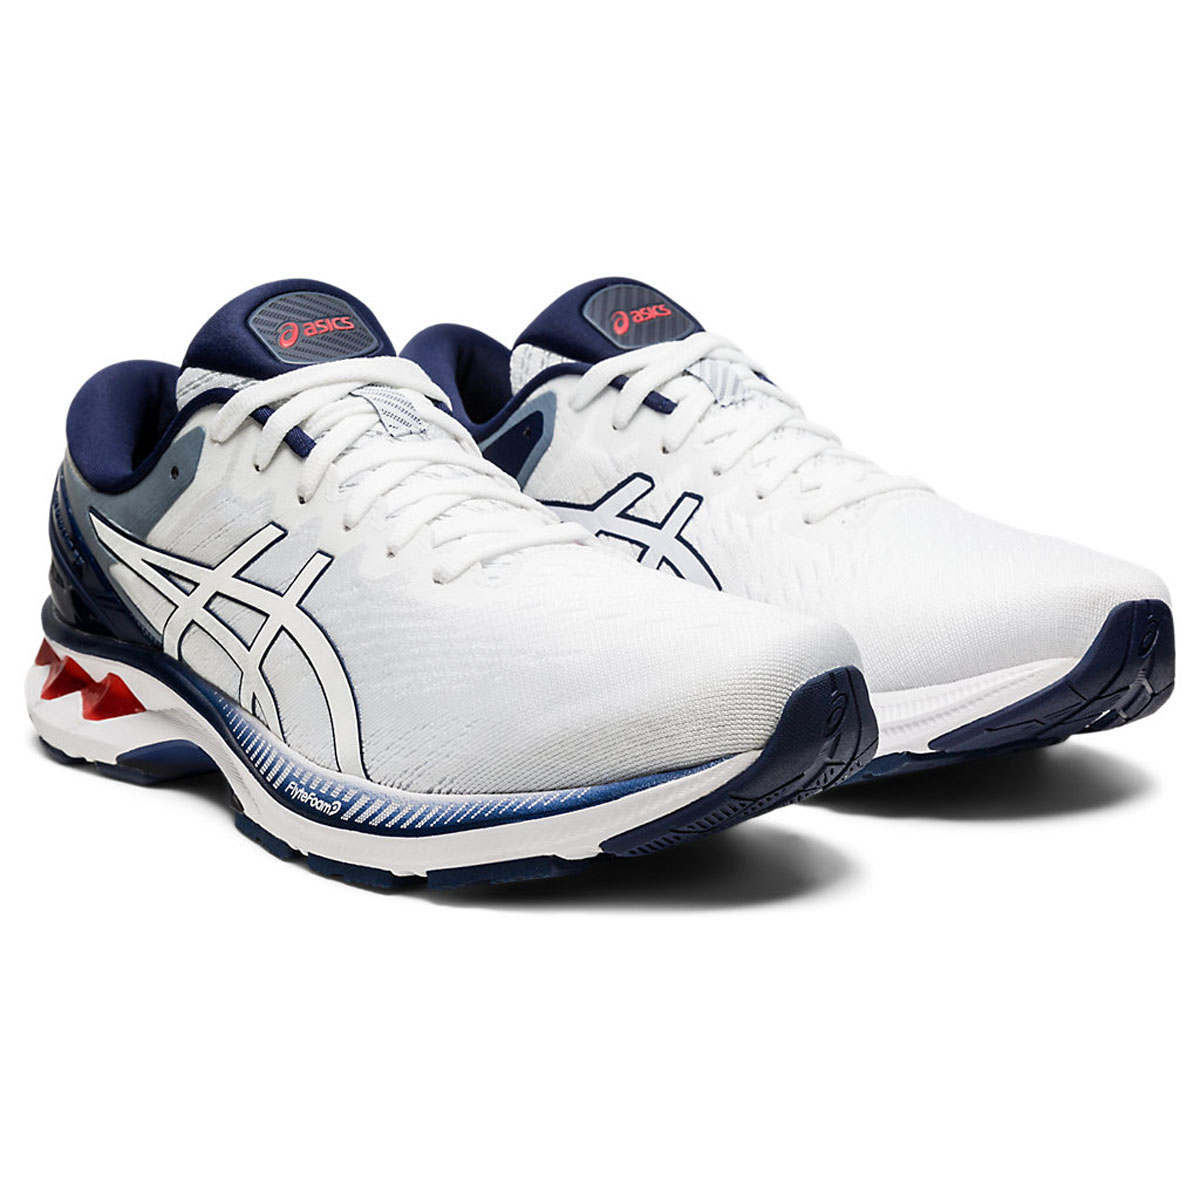 Men's Asics GEL-Kayano 27 Running Shoe - Color: White/Peacoat (Regular Width) - Size: 6, White/Peacoat, large, image 3